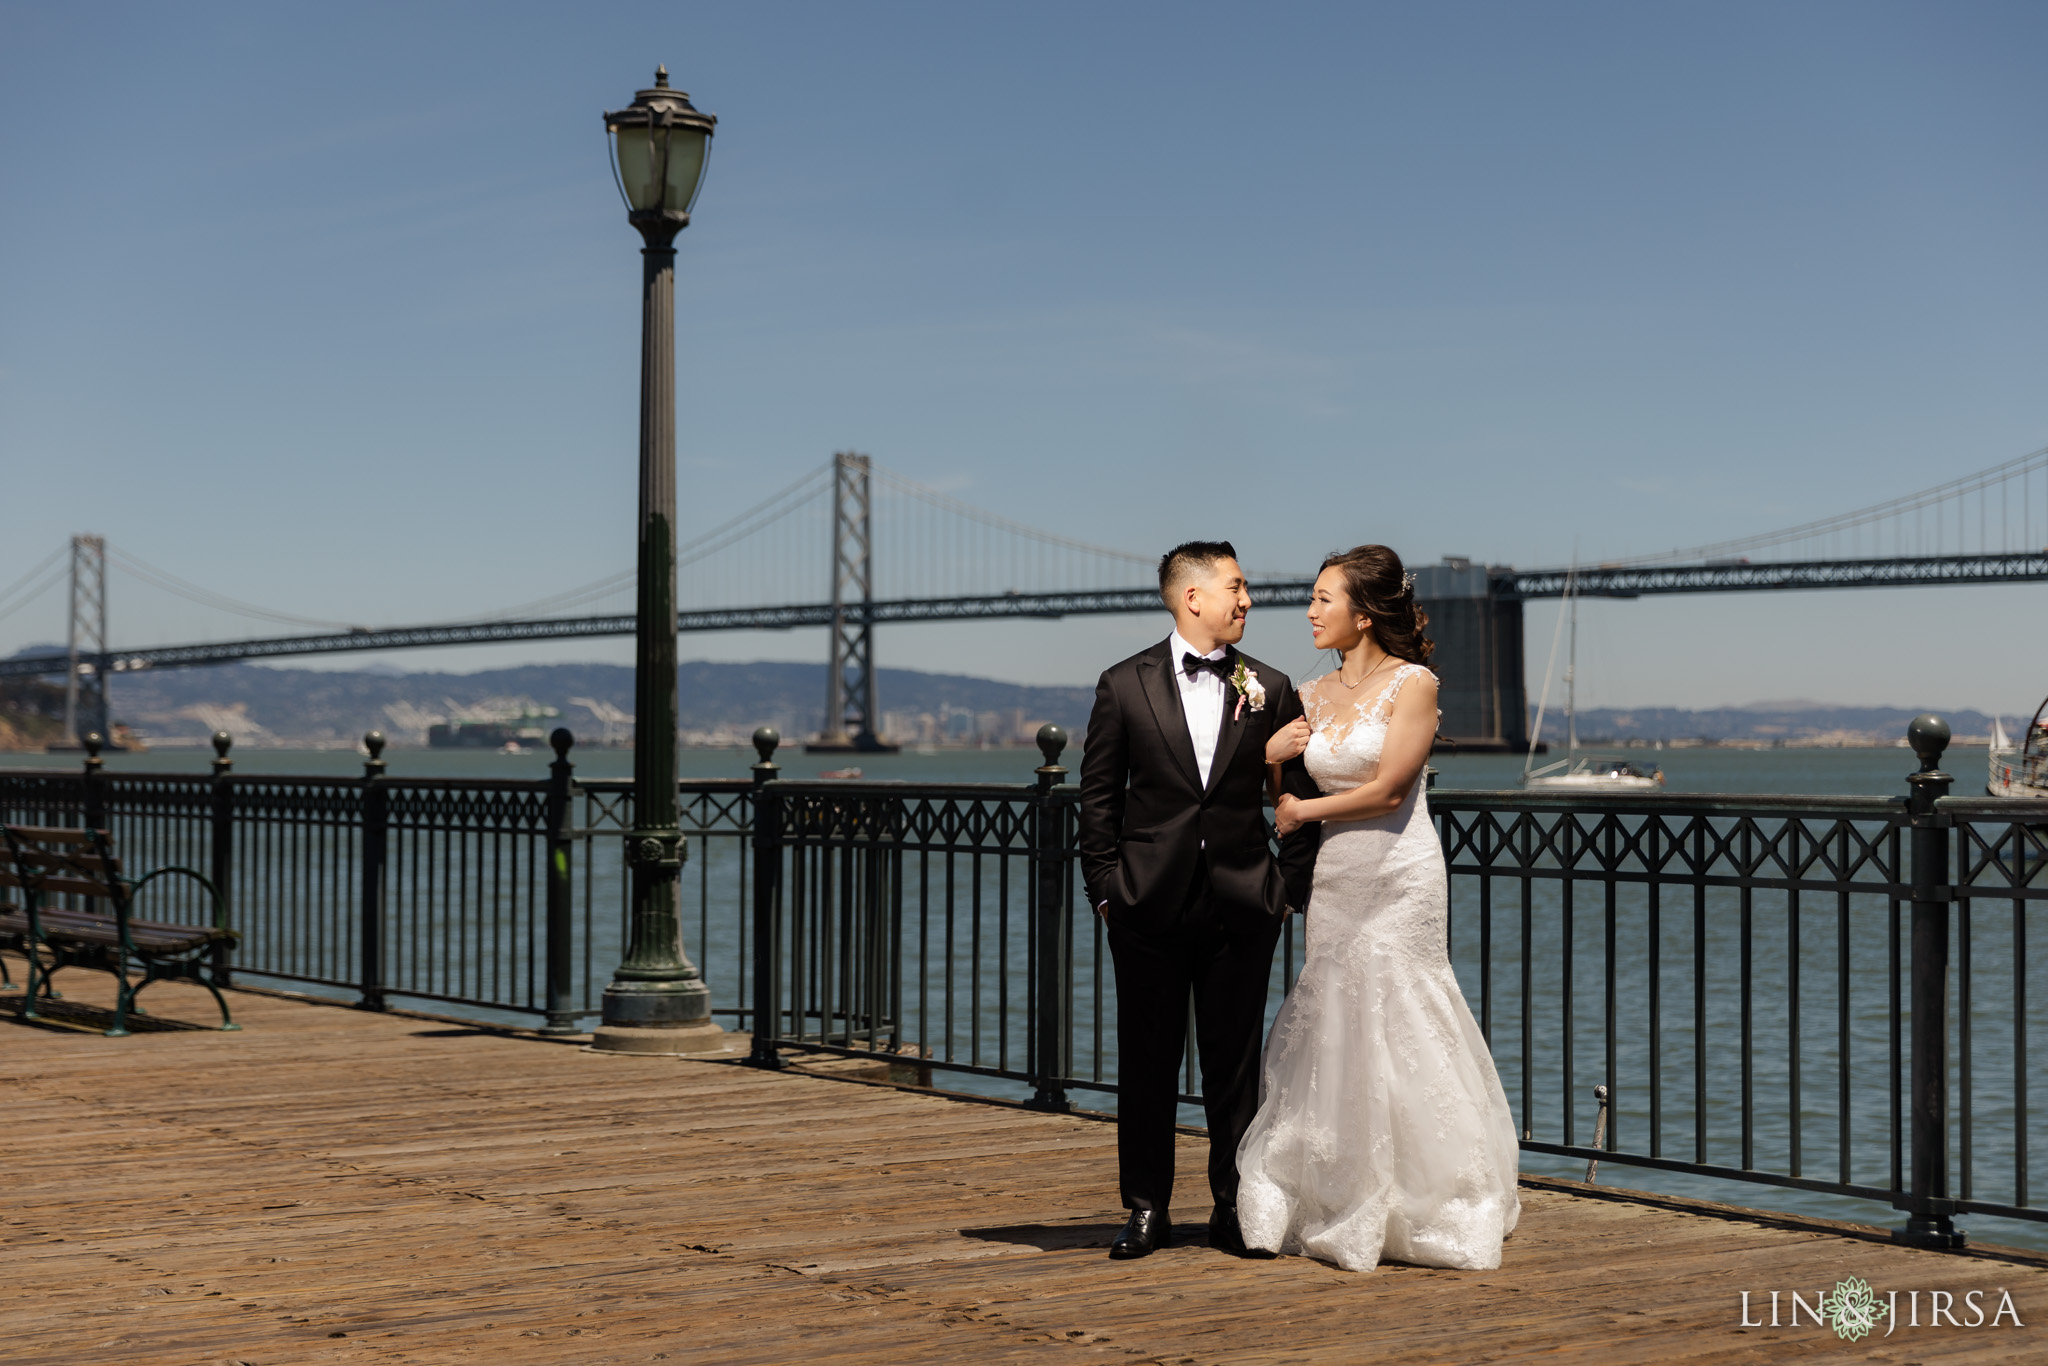 13 Bently Reserve San Francisco Destination Wedding Photographer